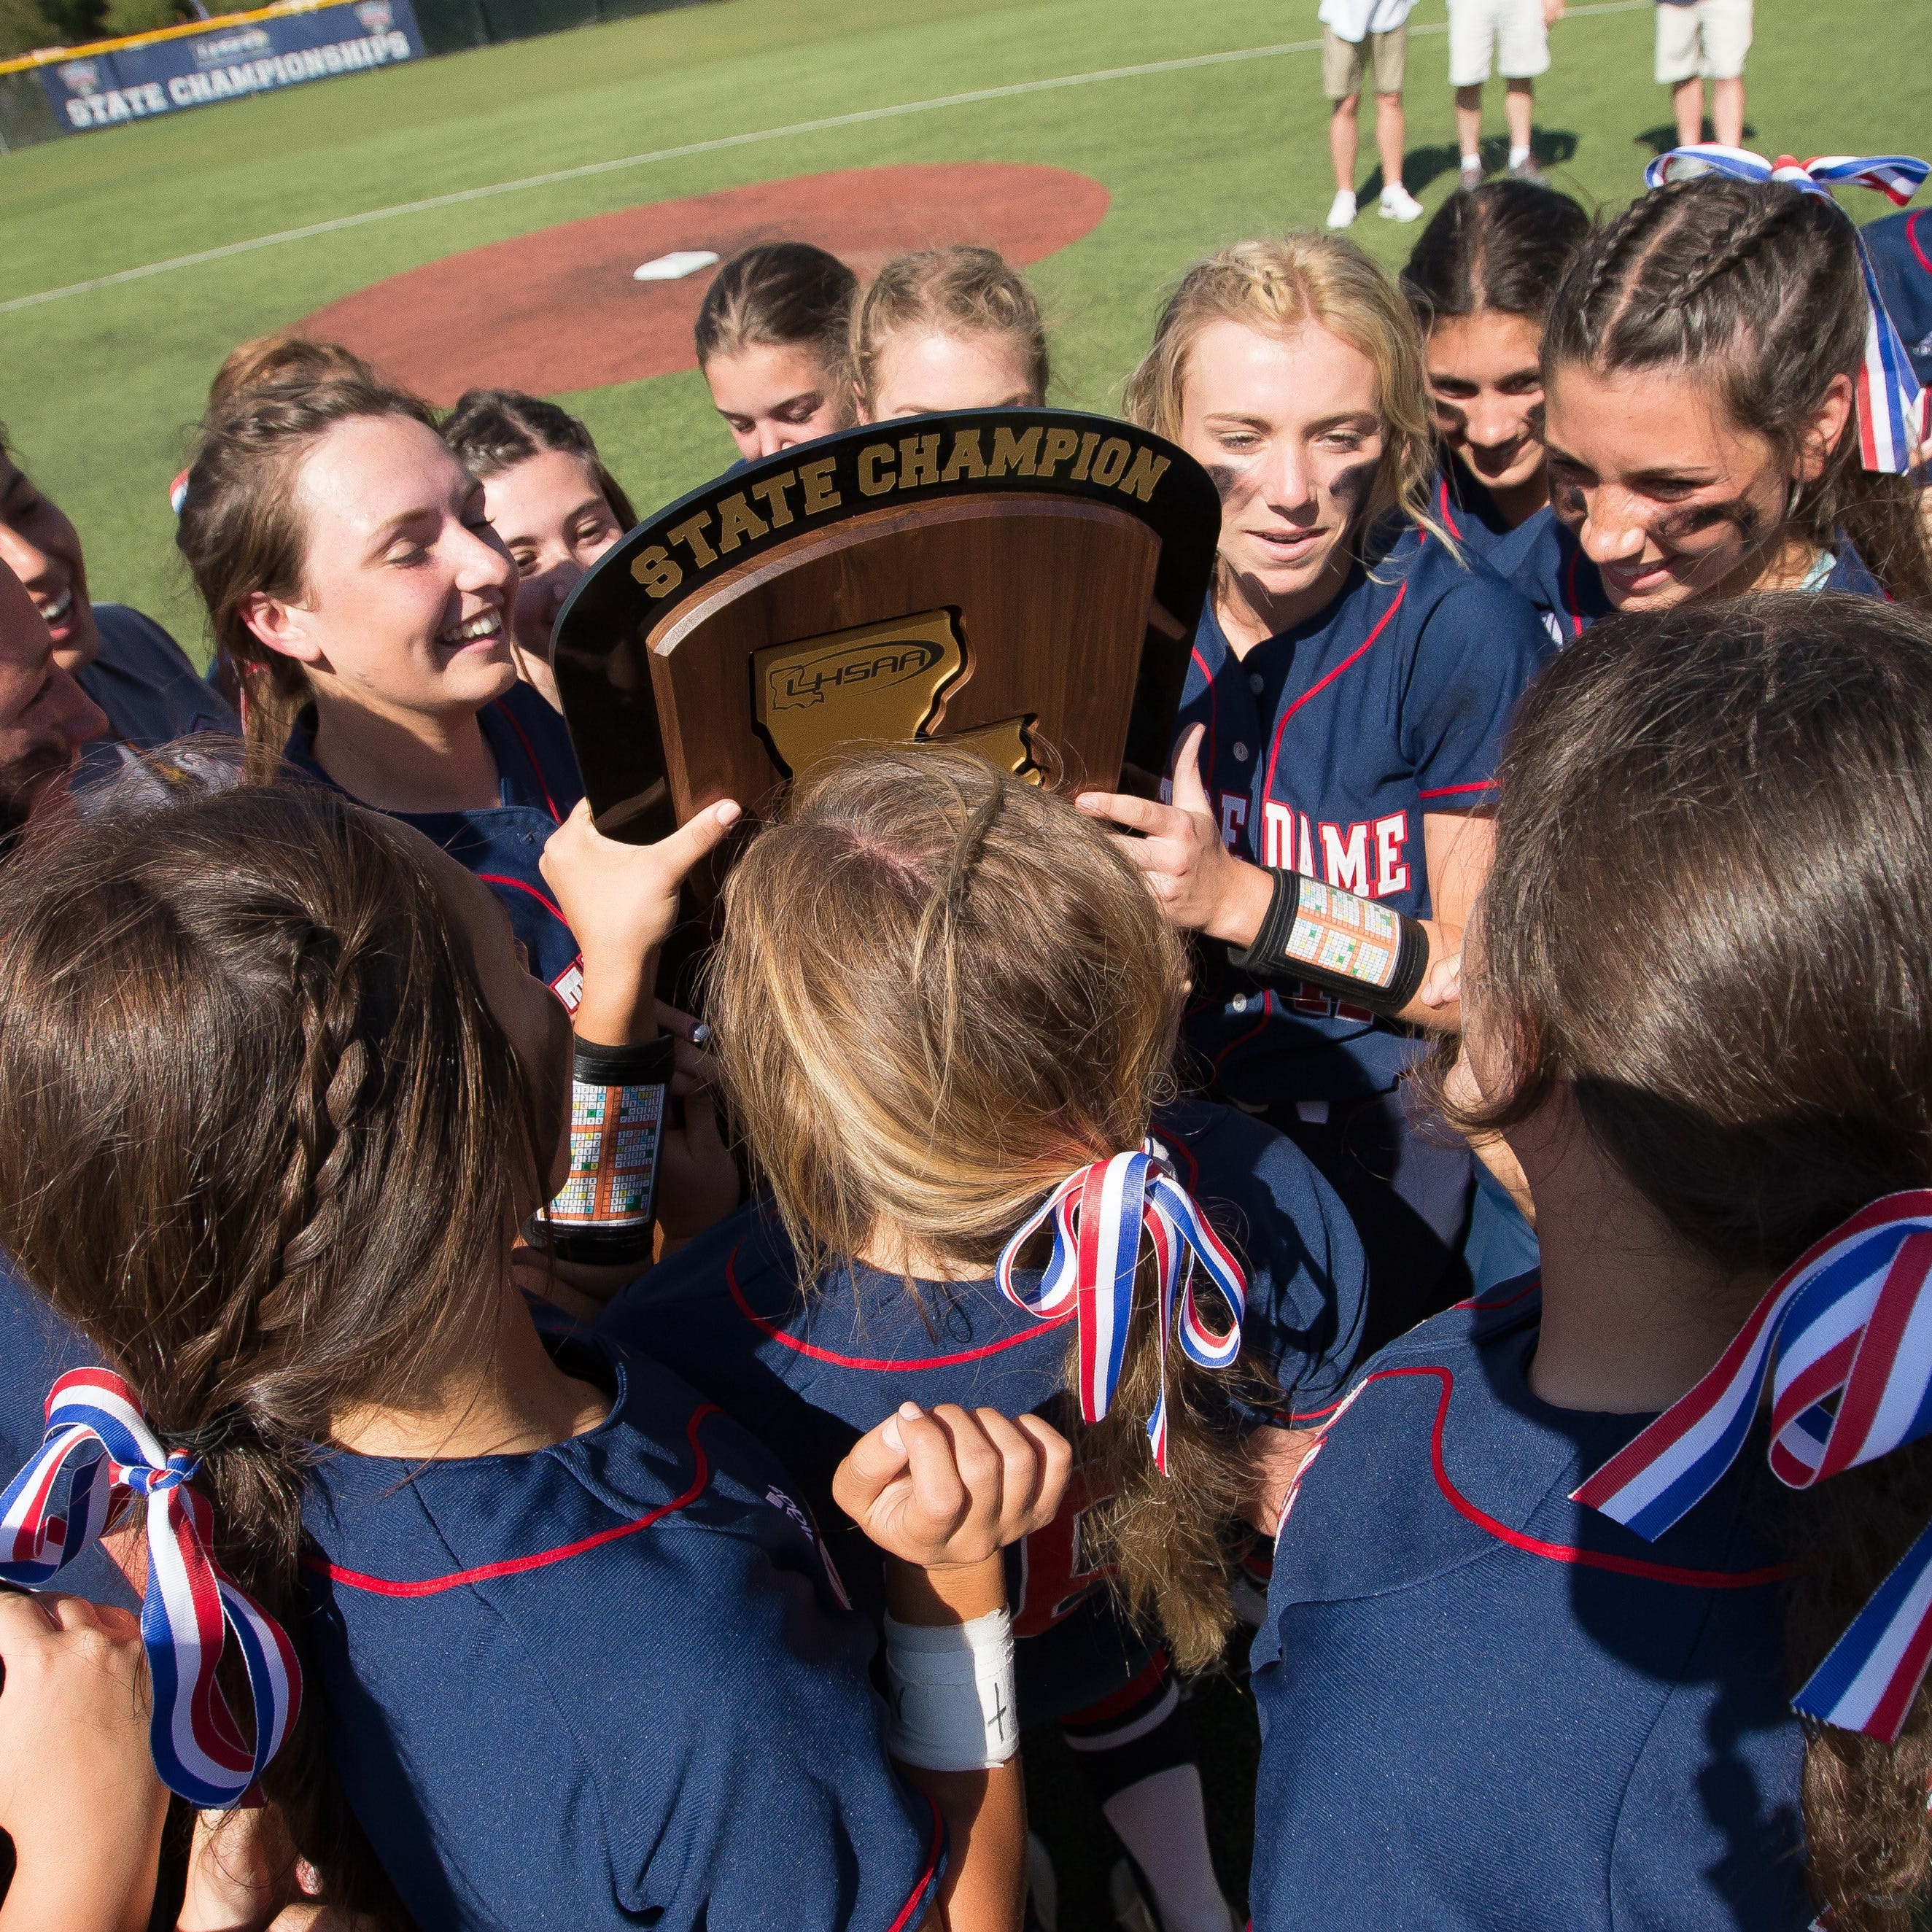 Notre Dame repeats as state softball champions